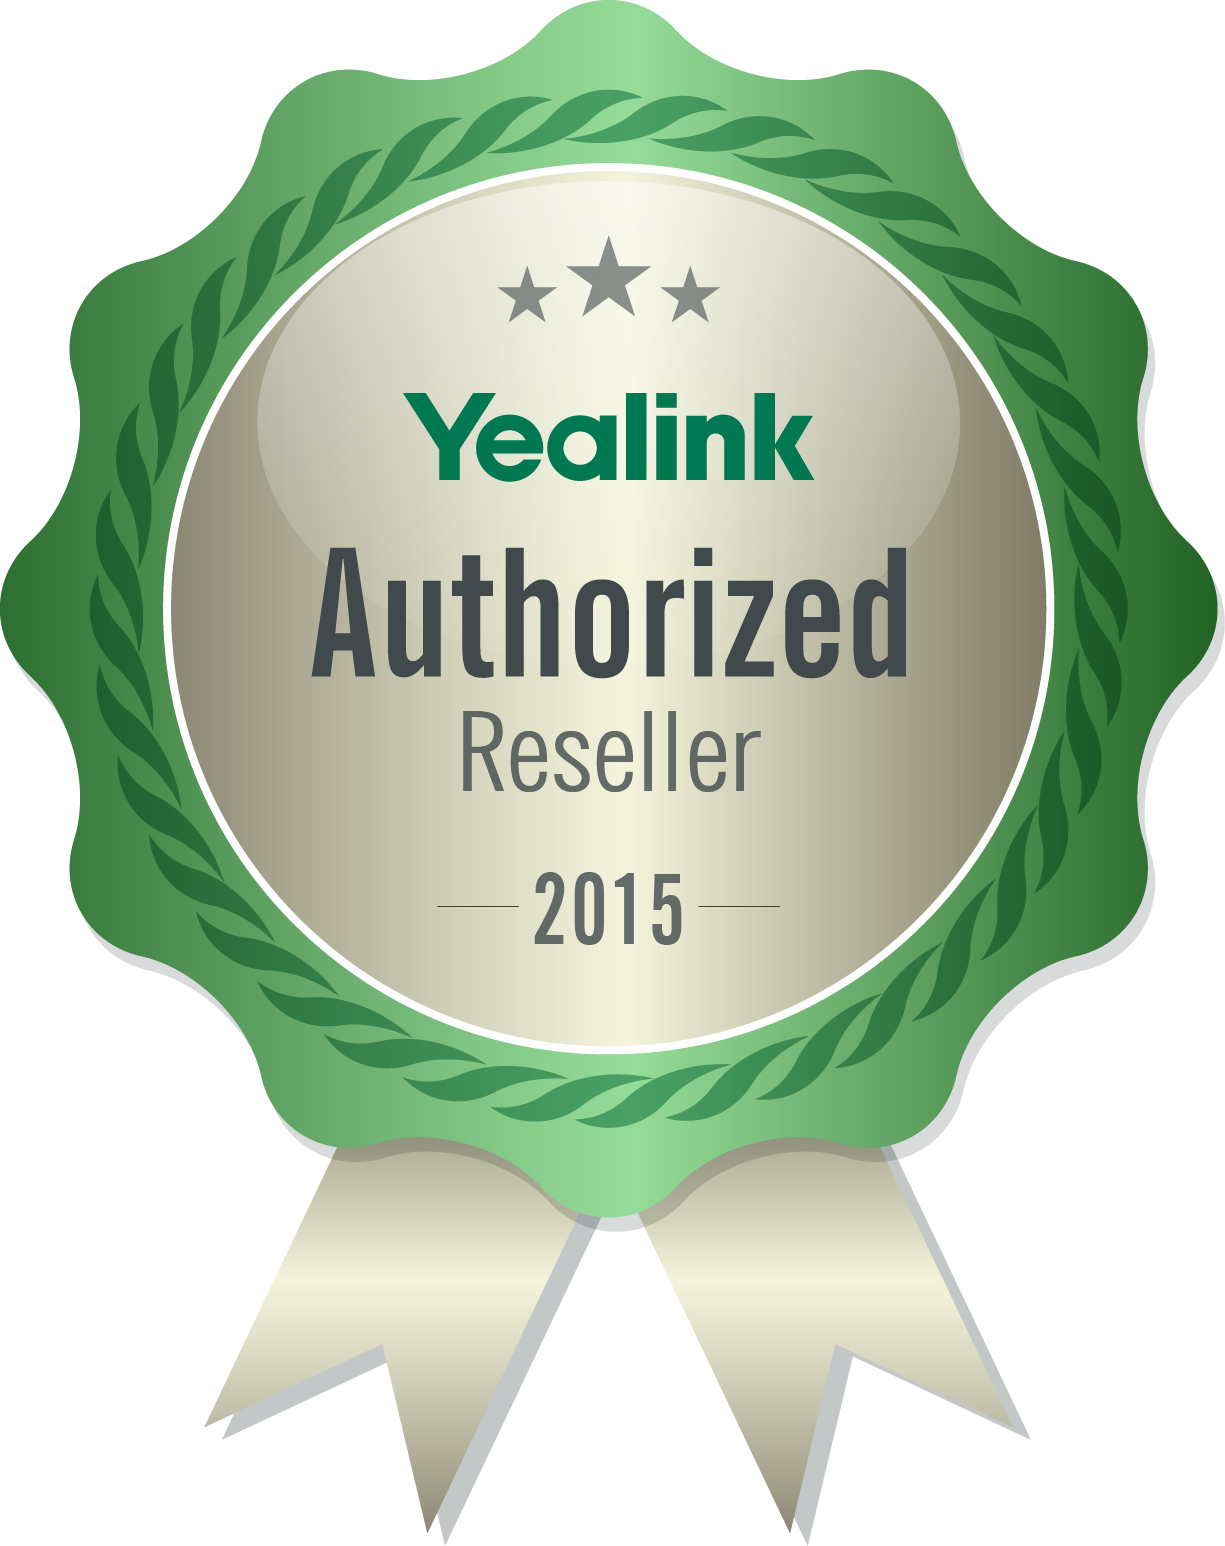 VoIP Supply is an Authorized Online Yealink Reseller